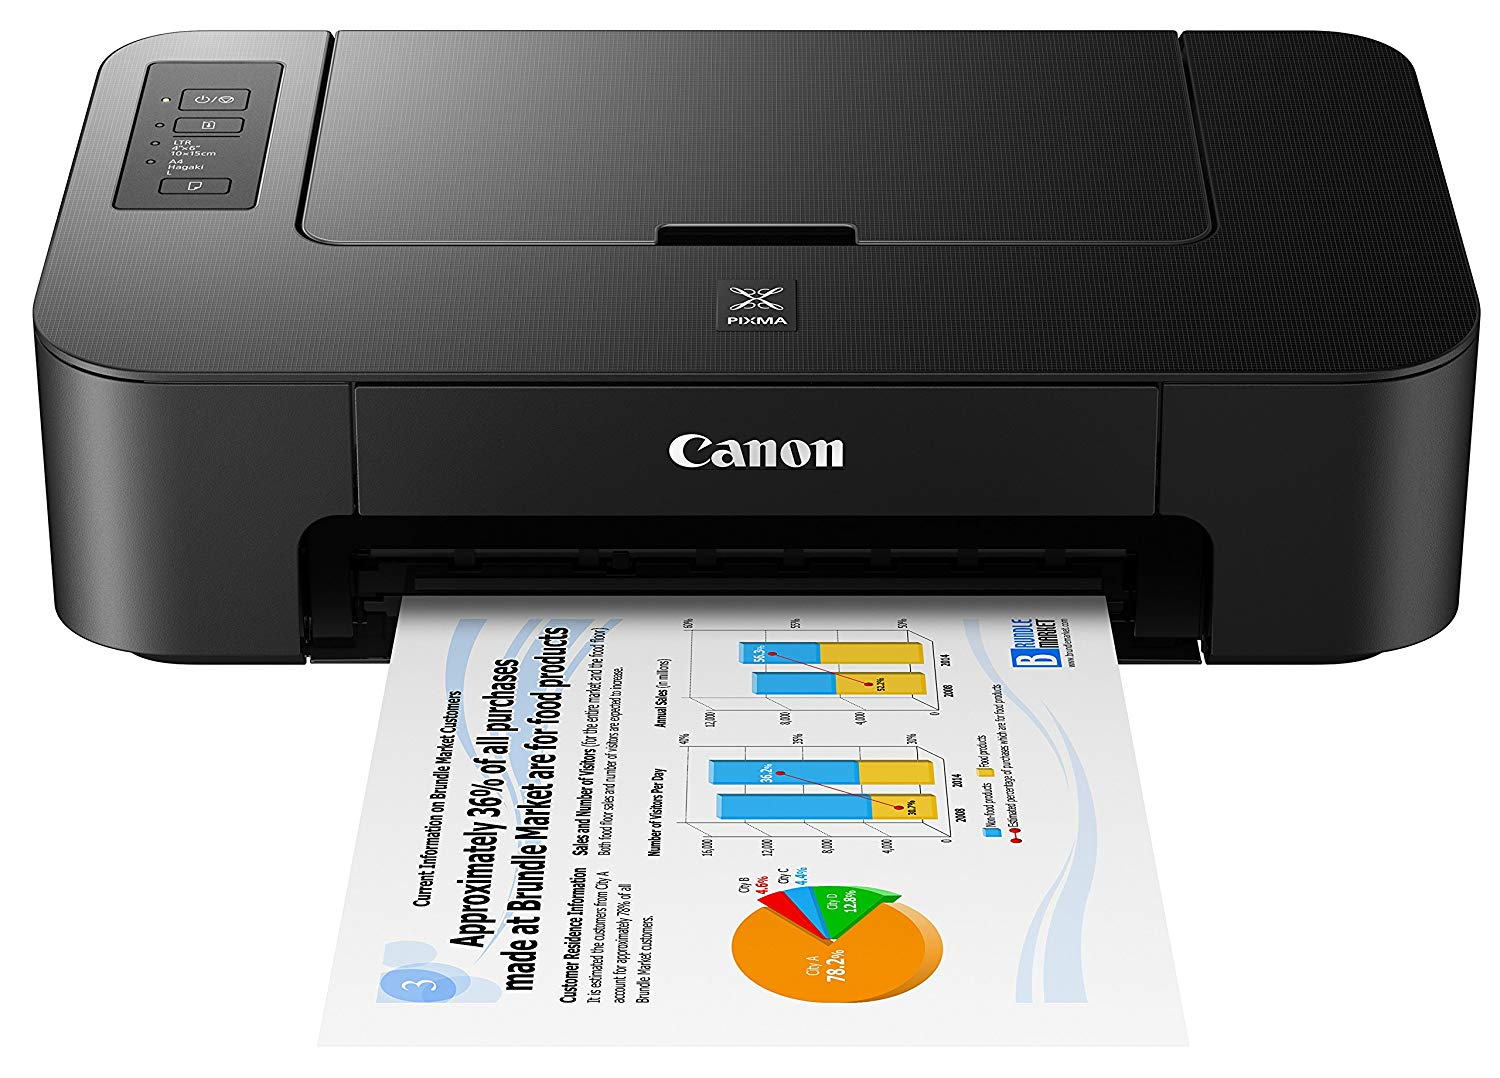 Canon TS202 Inkjet Photo Printer only $19.99! (was $35)